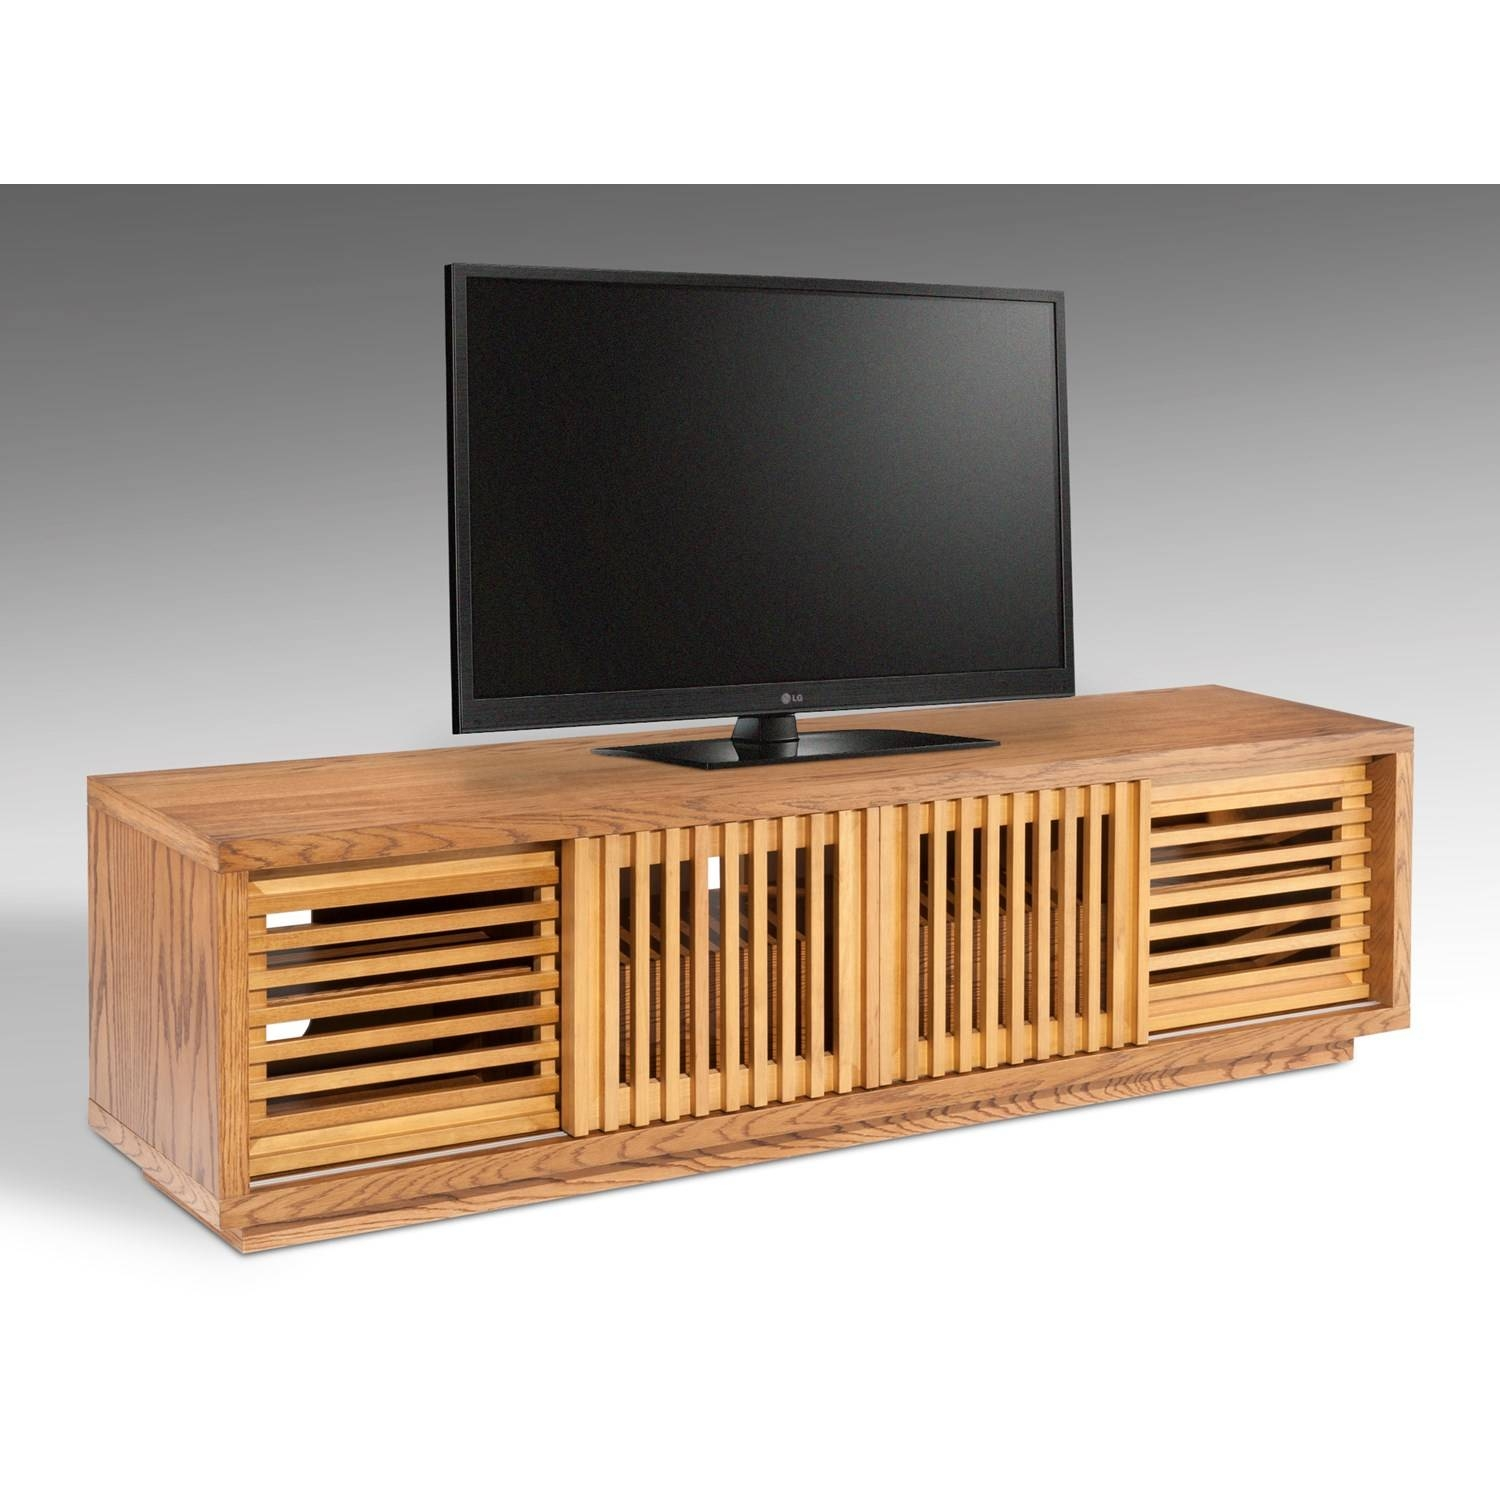 "The Simple Stores 81.5"" Designer American White Oak Tv Stand In in Honey Oak Tv Stands (Image 3 of 15)"